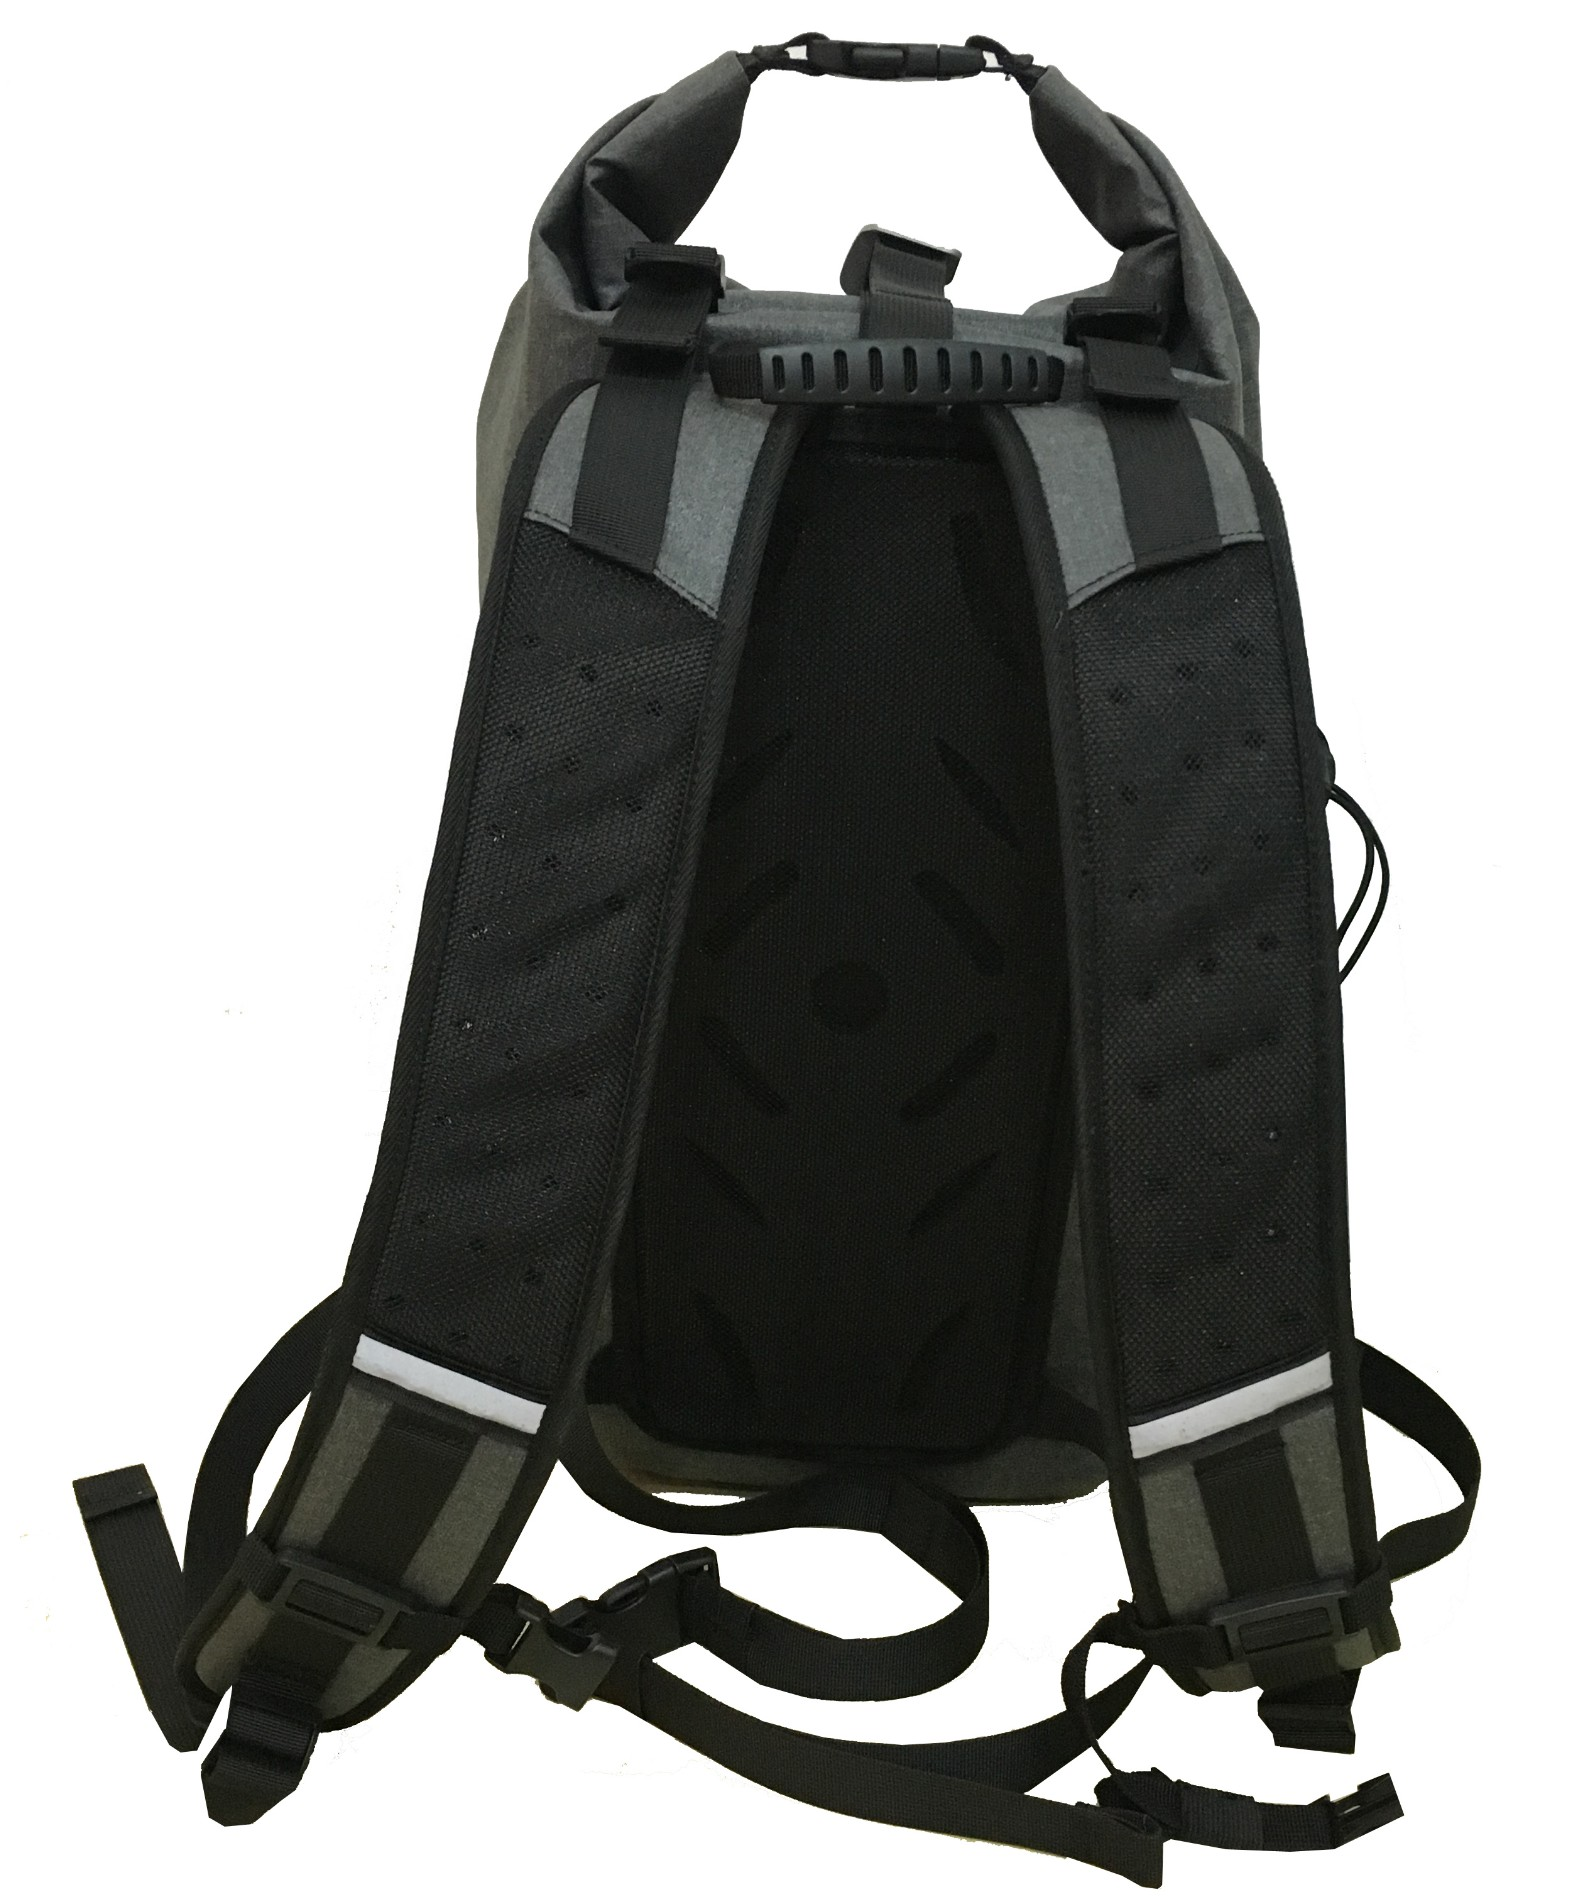 Swimming Dry Bag Manufacturers, Swimming Dry Bag Factory, Supply Swimming Dry Bag